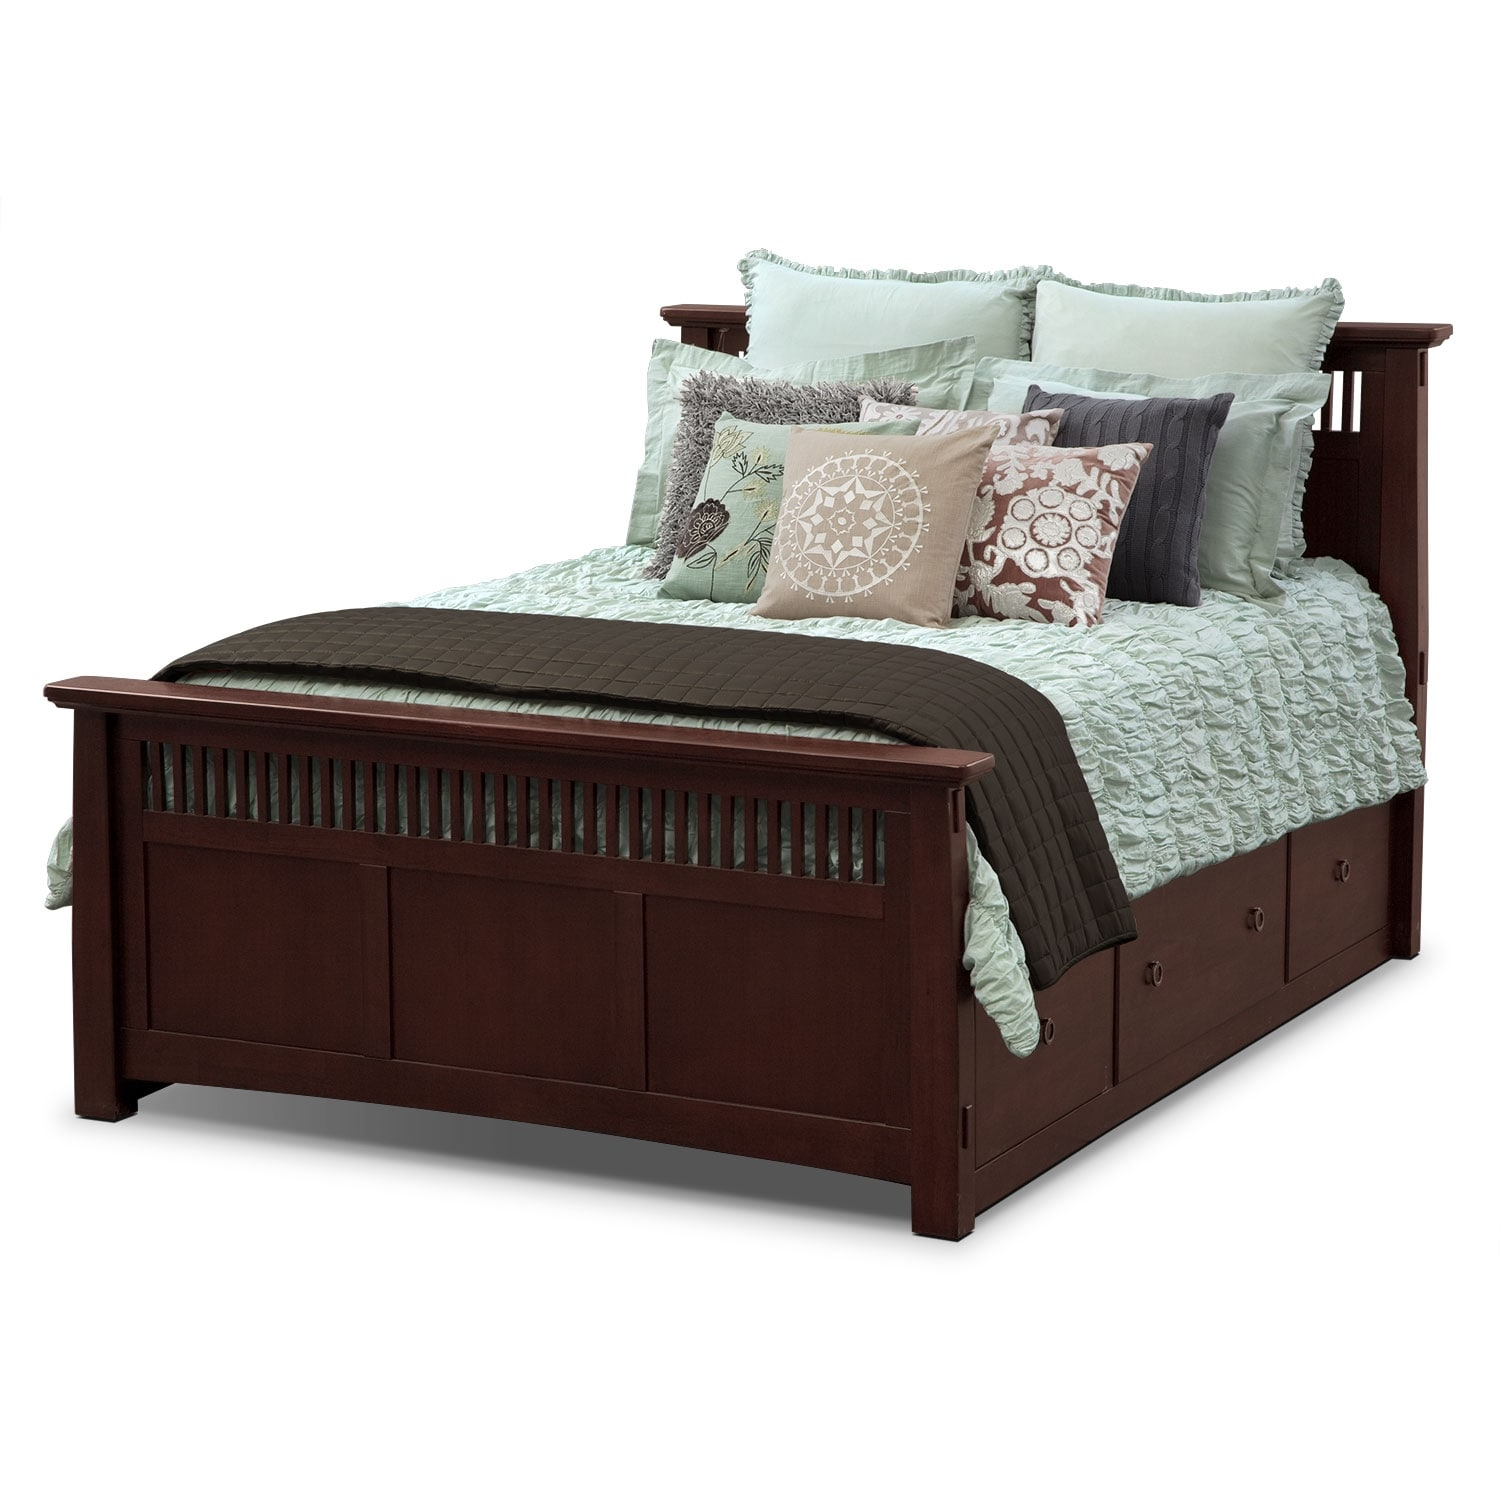 Accent and Occasional Furniture - Kaitlin II Queen Bedding Set